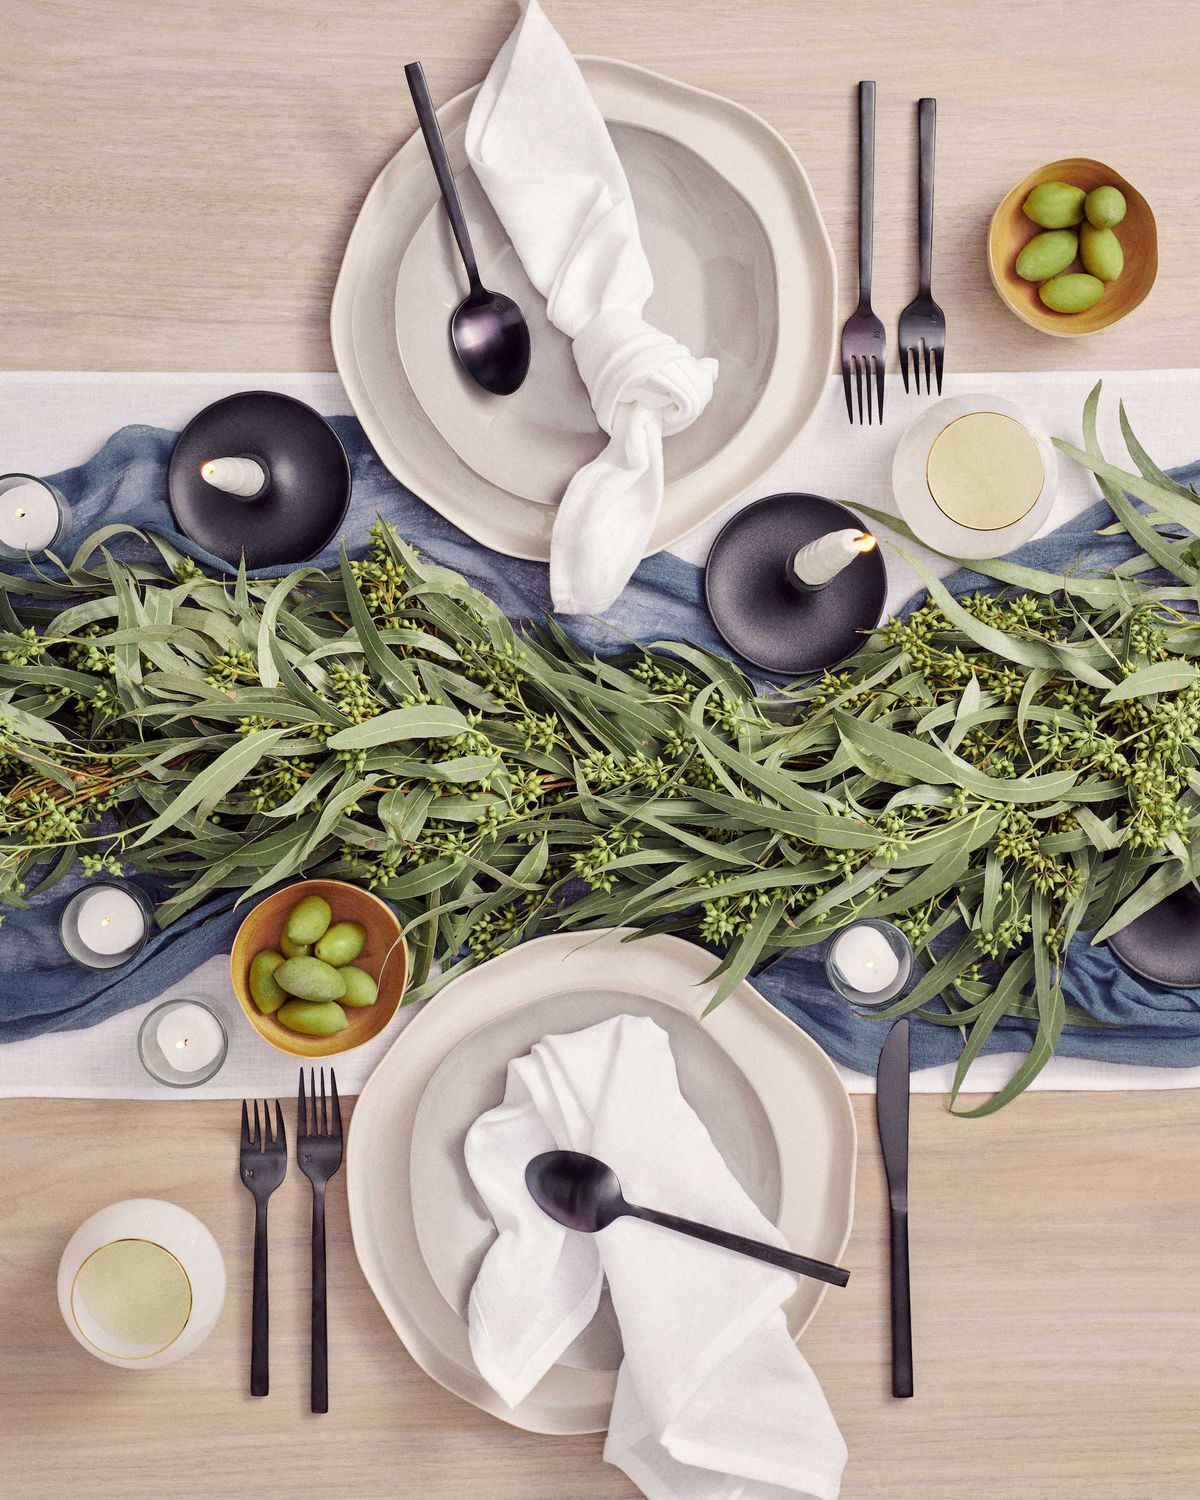 An overhead view of a table setting with off-white plates, black candle holders and flatware, and a greenery runner.